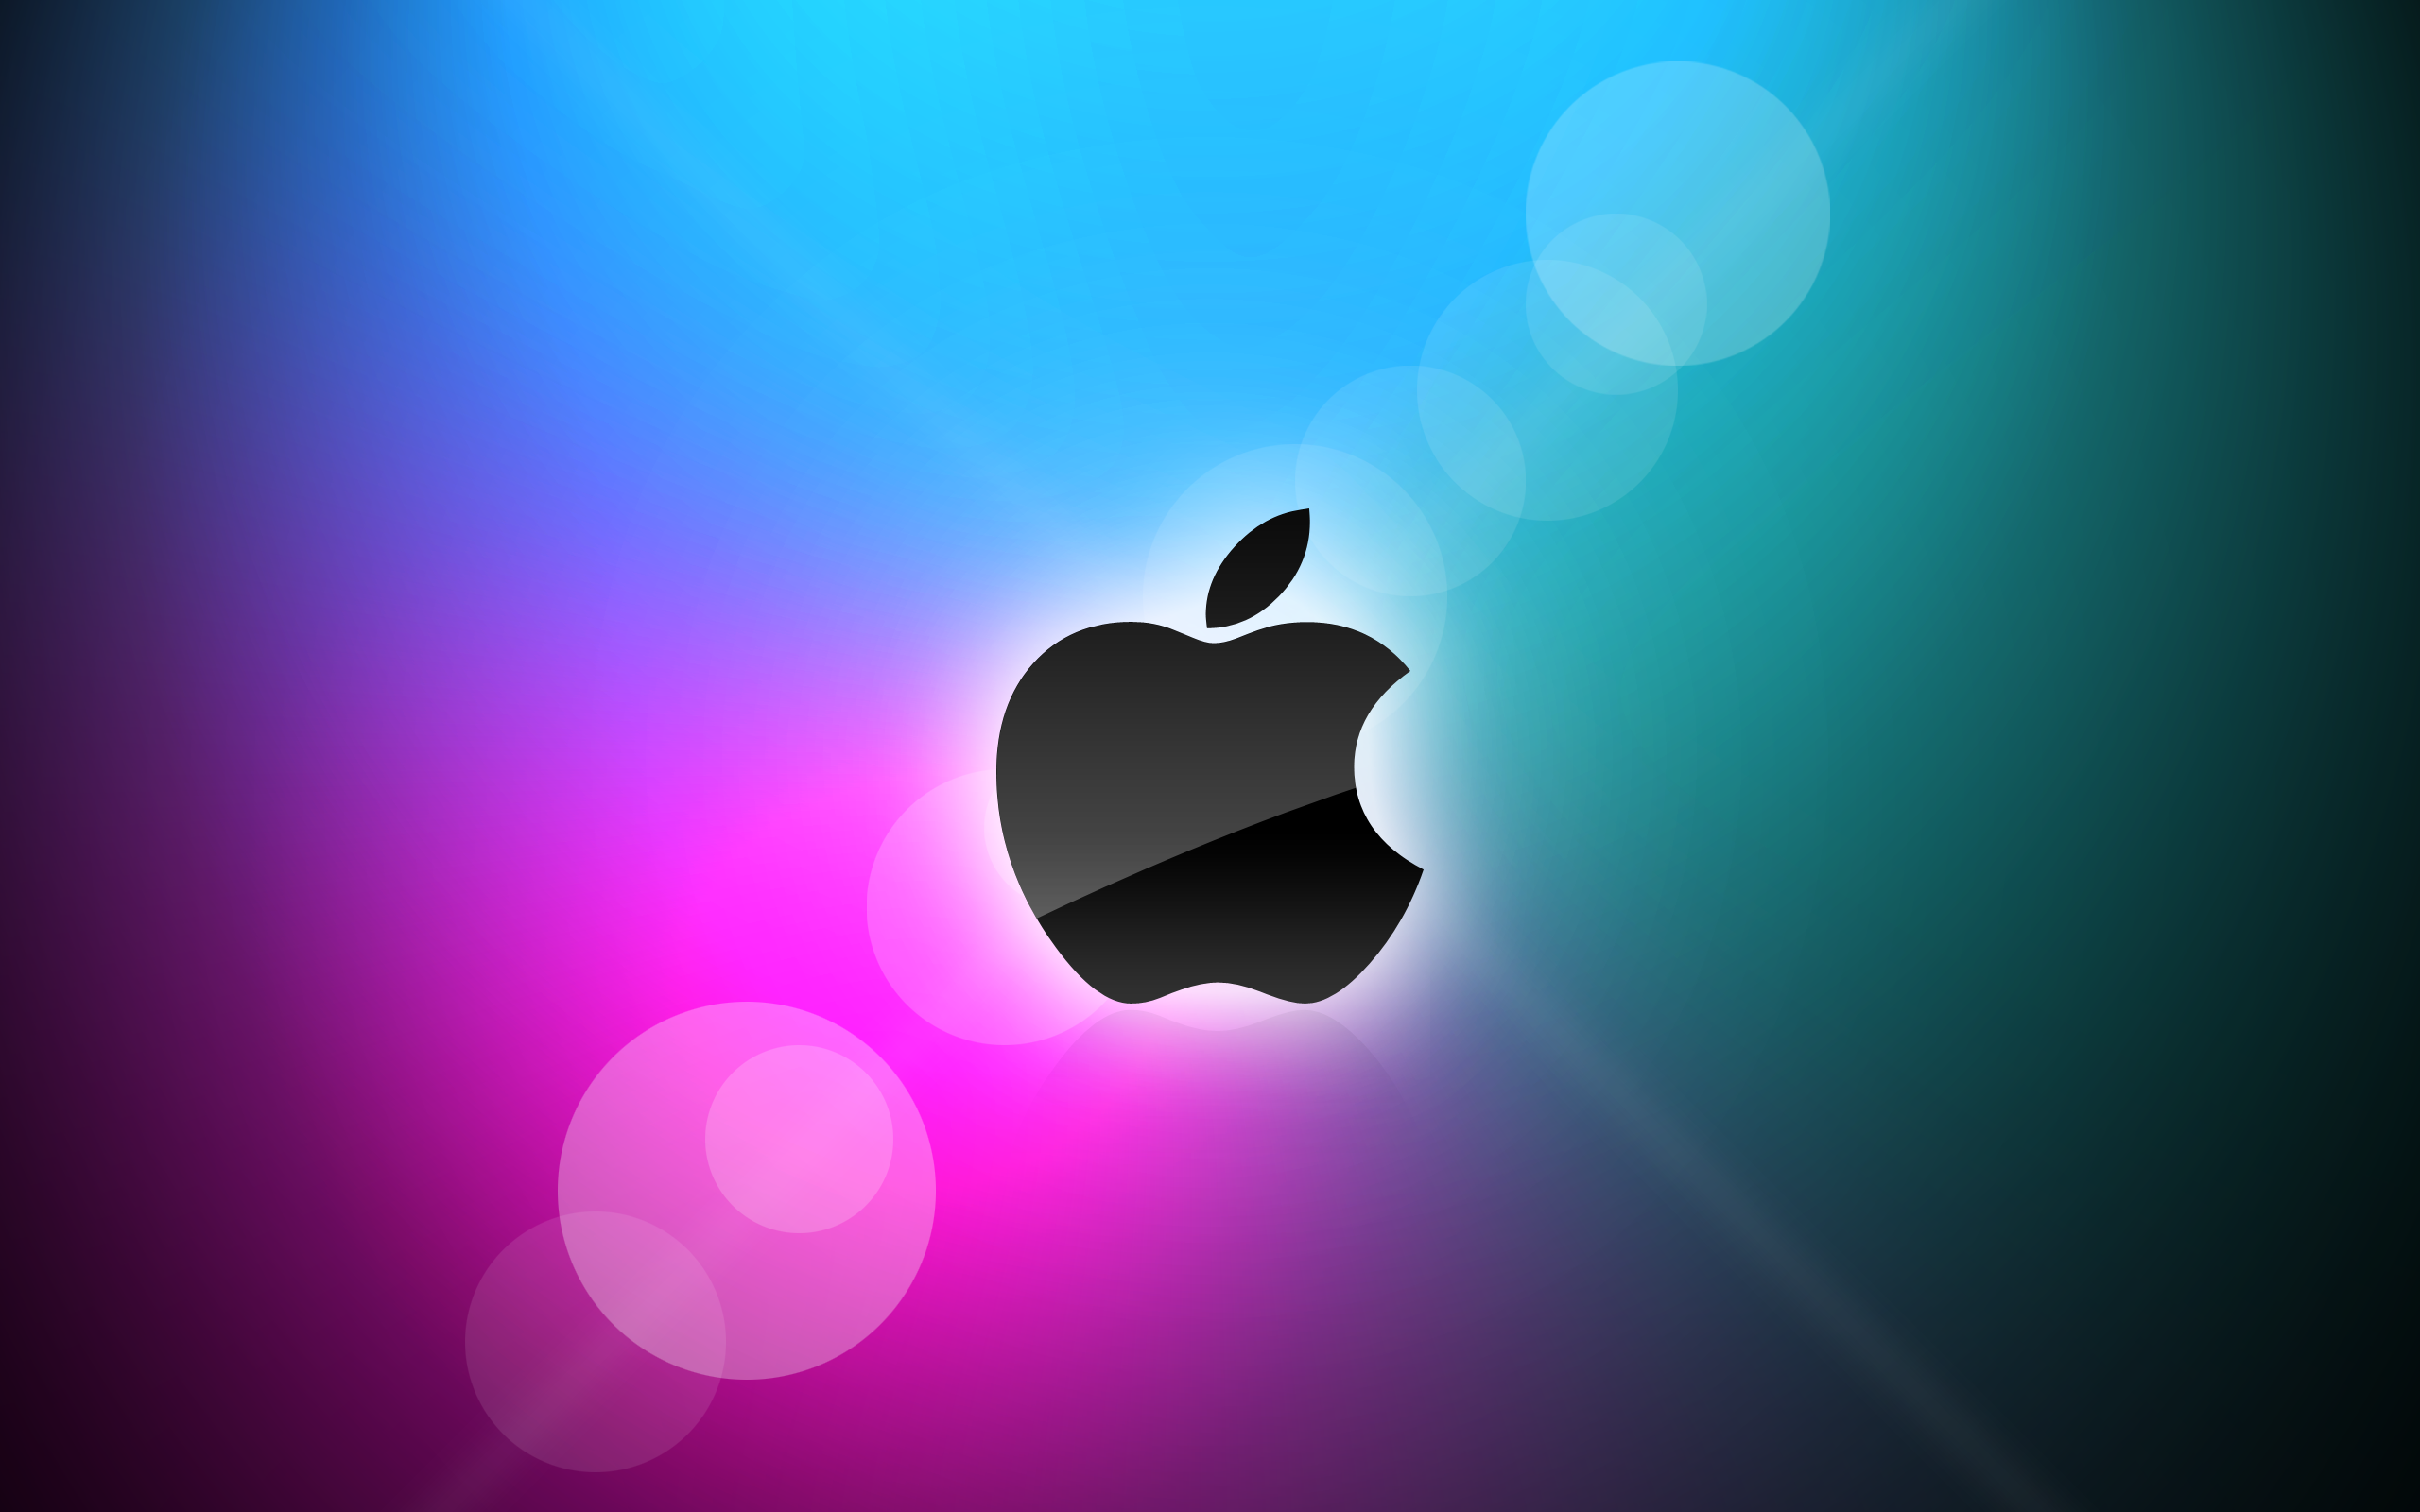 ... apple wallpaper 5 ...